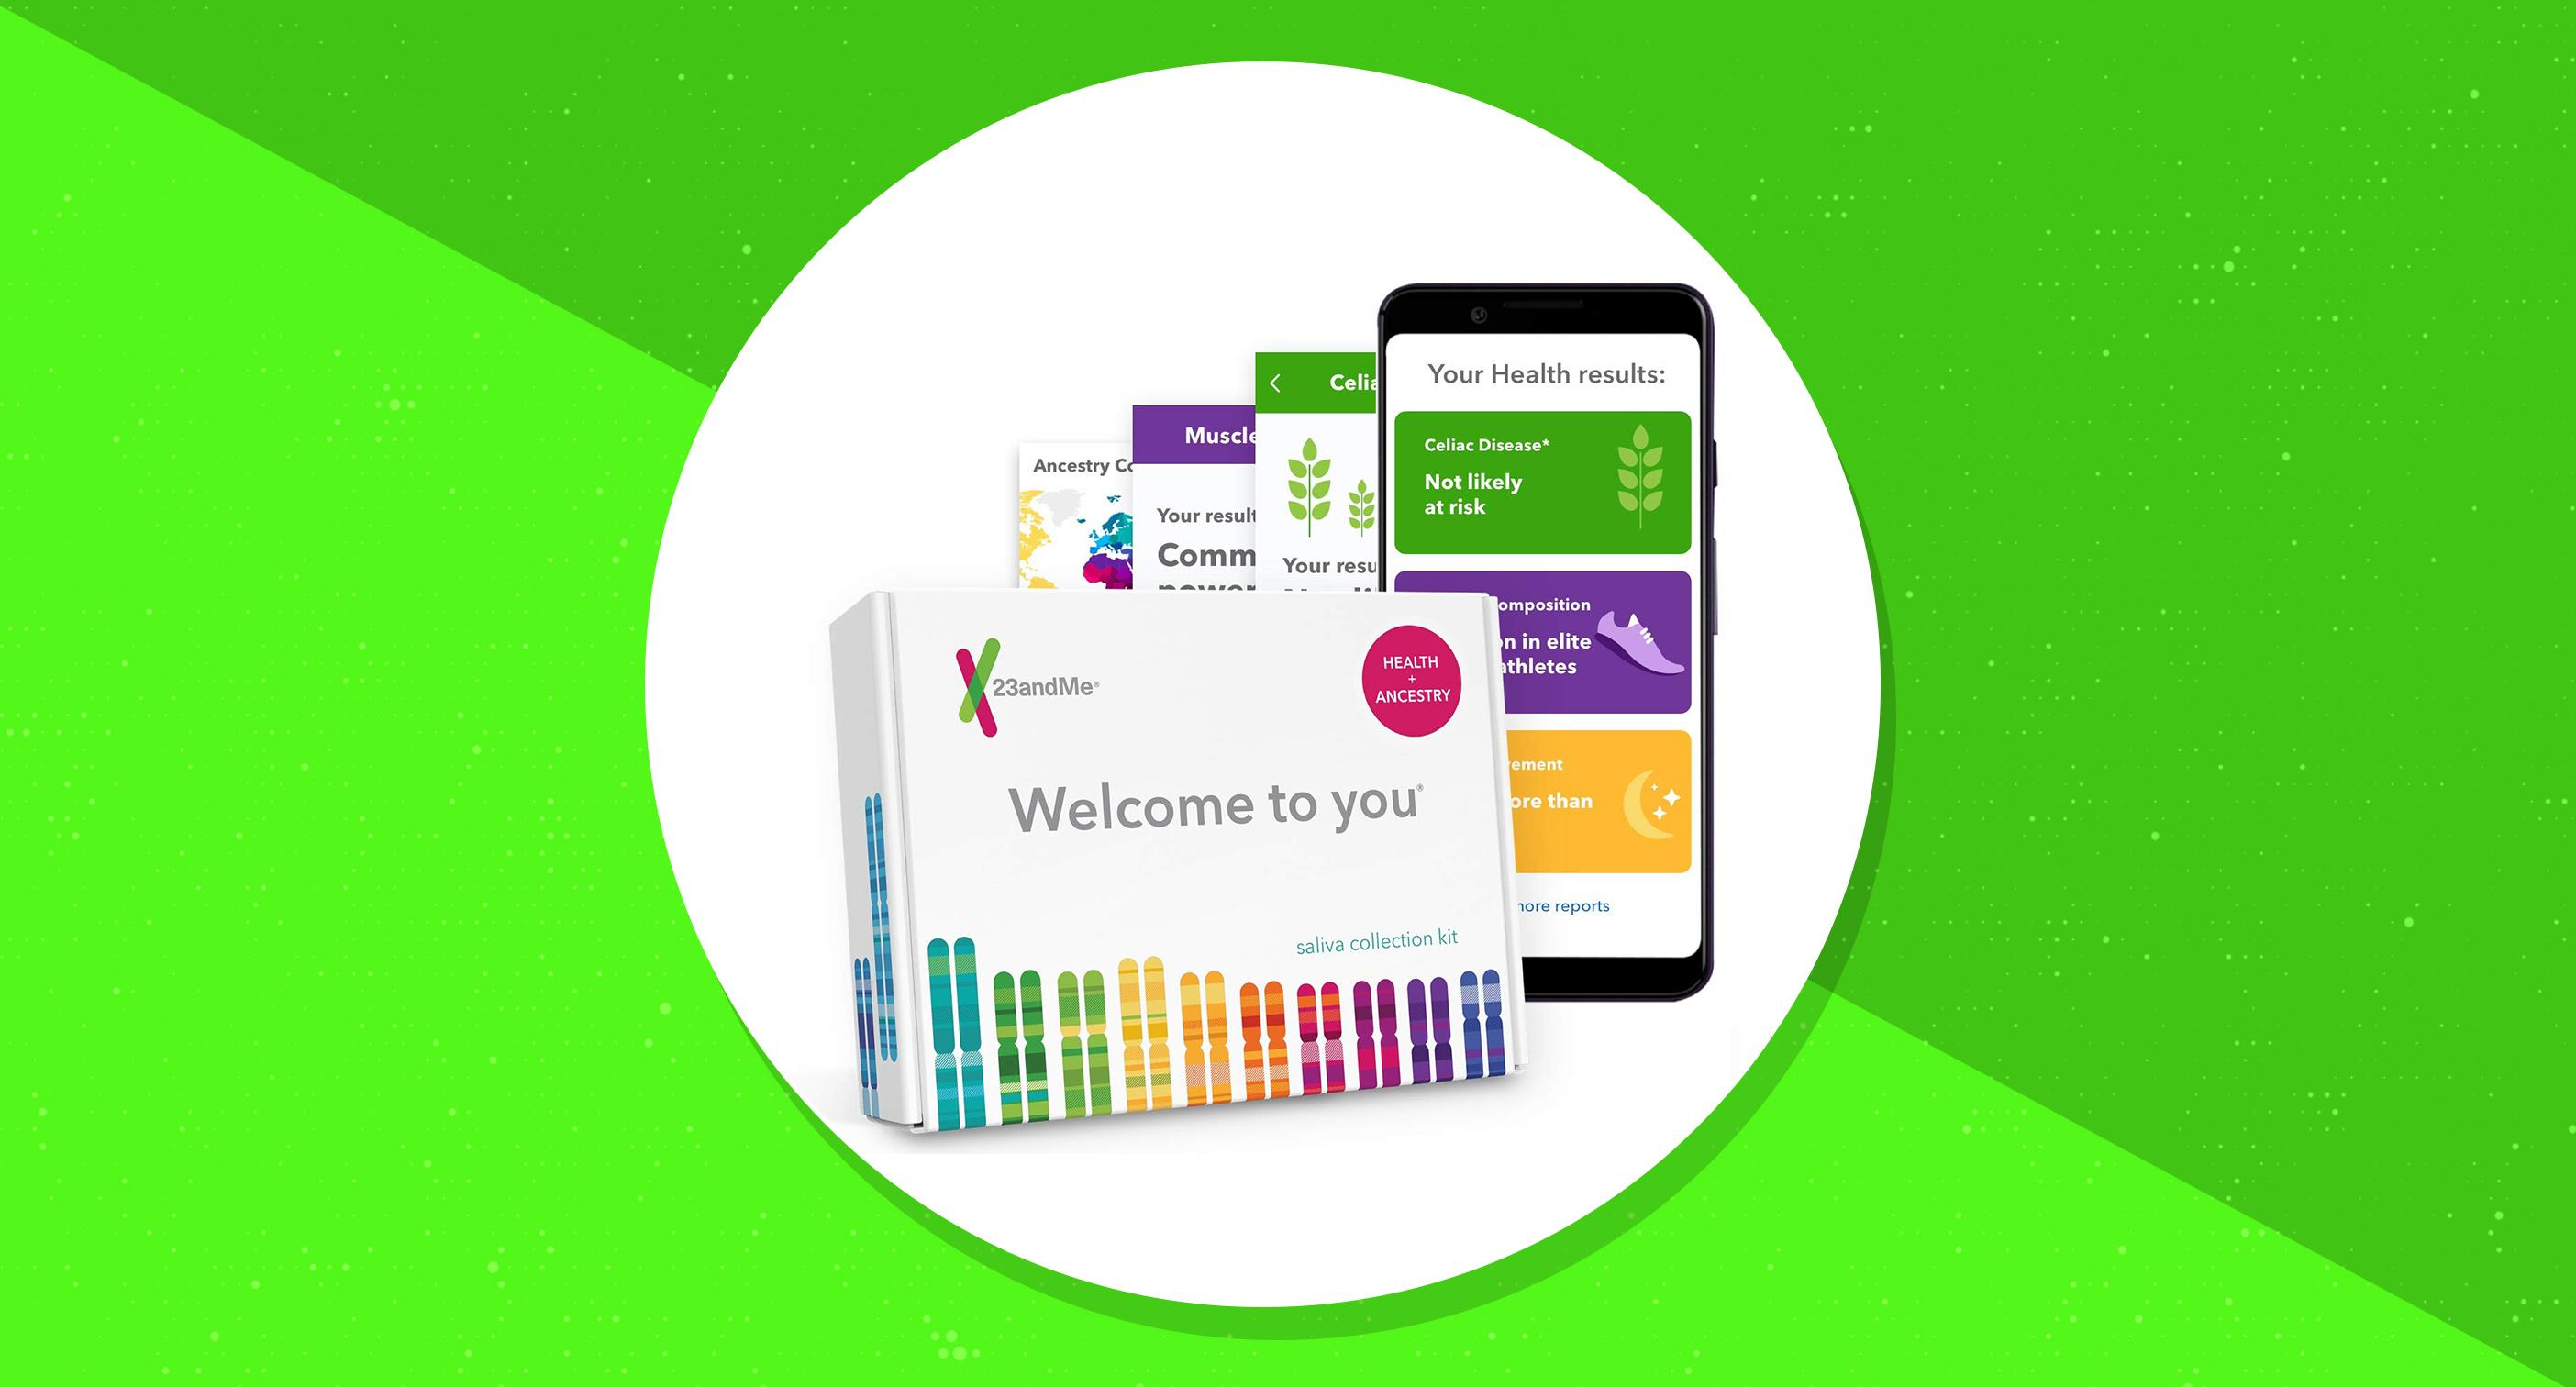 Prime Day 2019: 23andMe DNA test kit on sale for 50% off